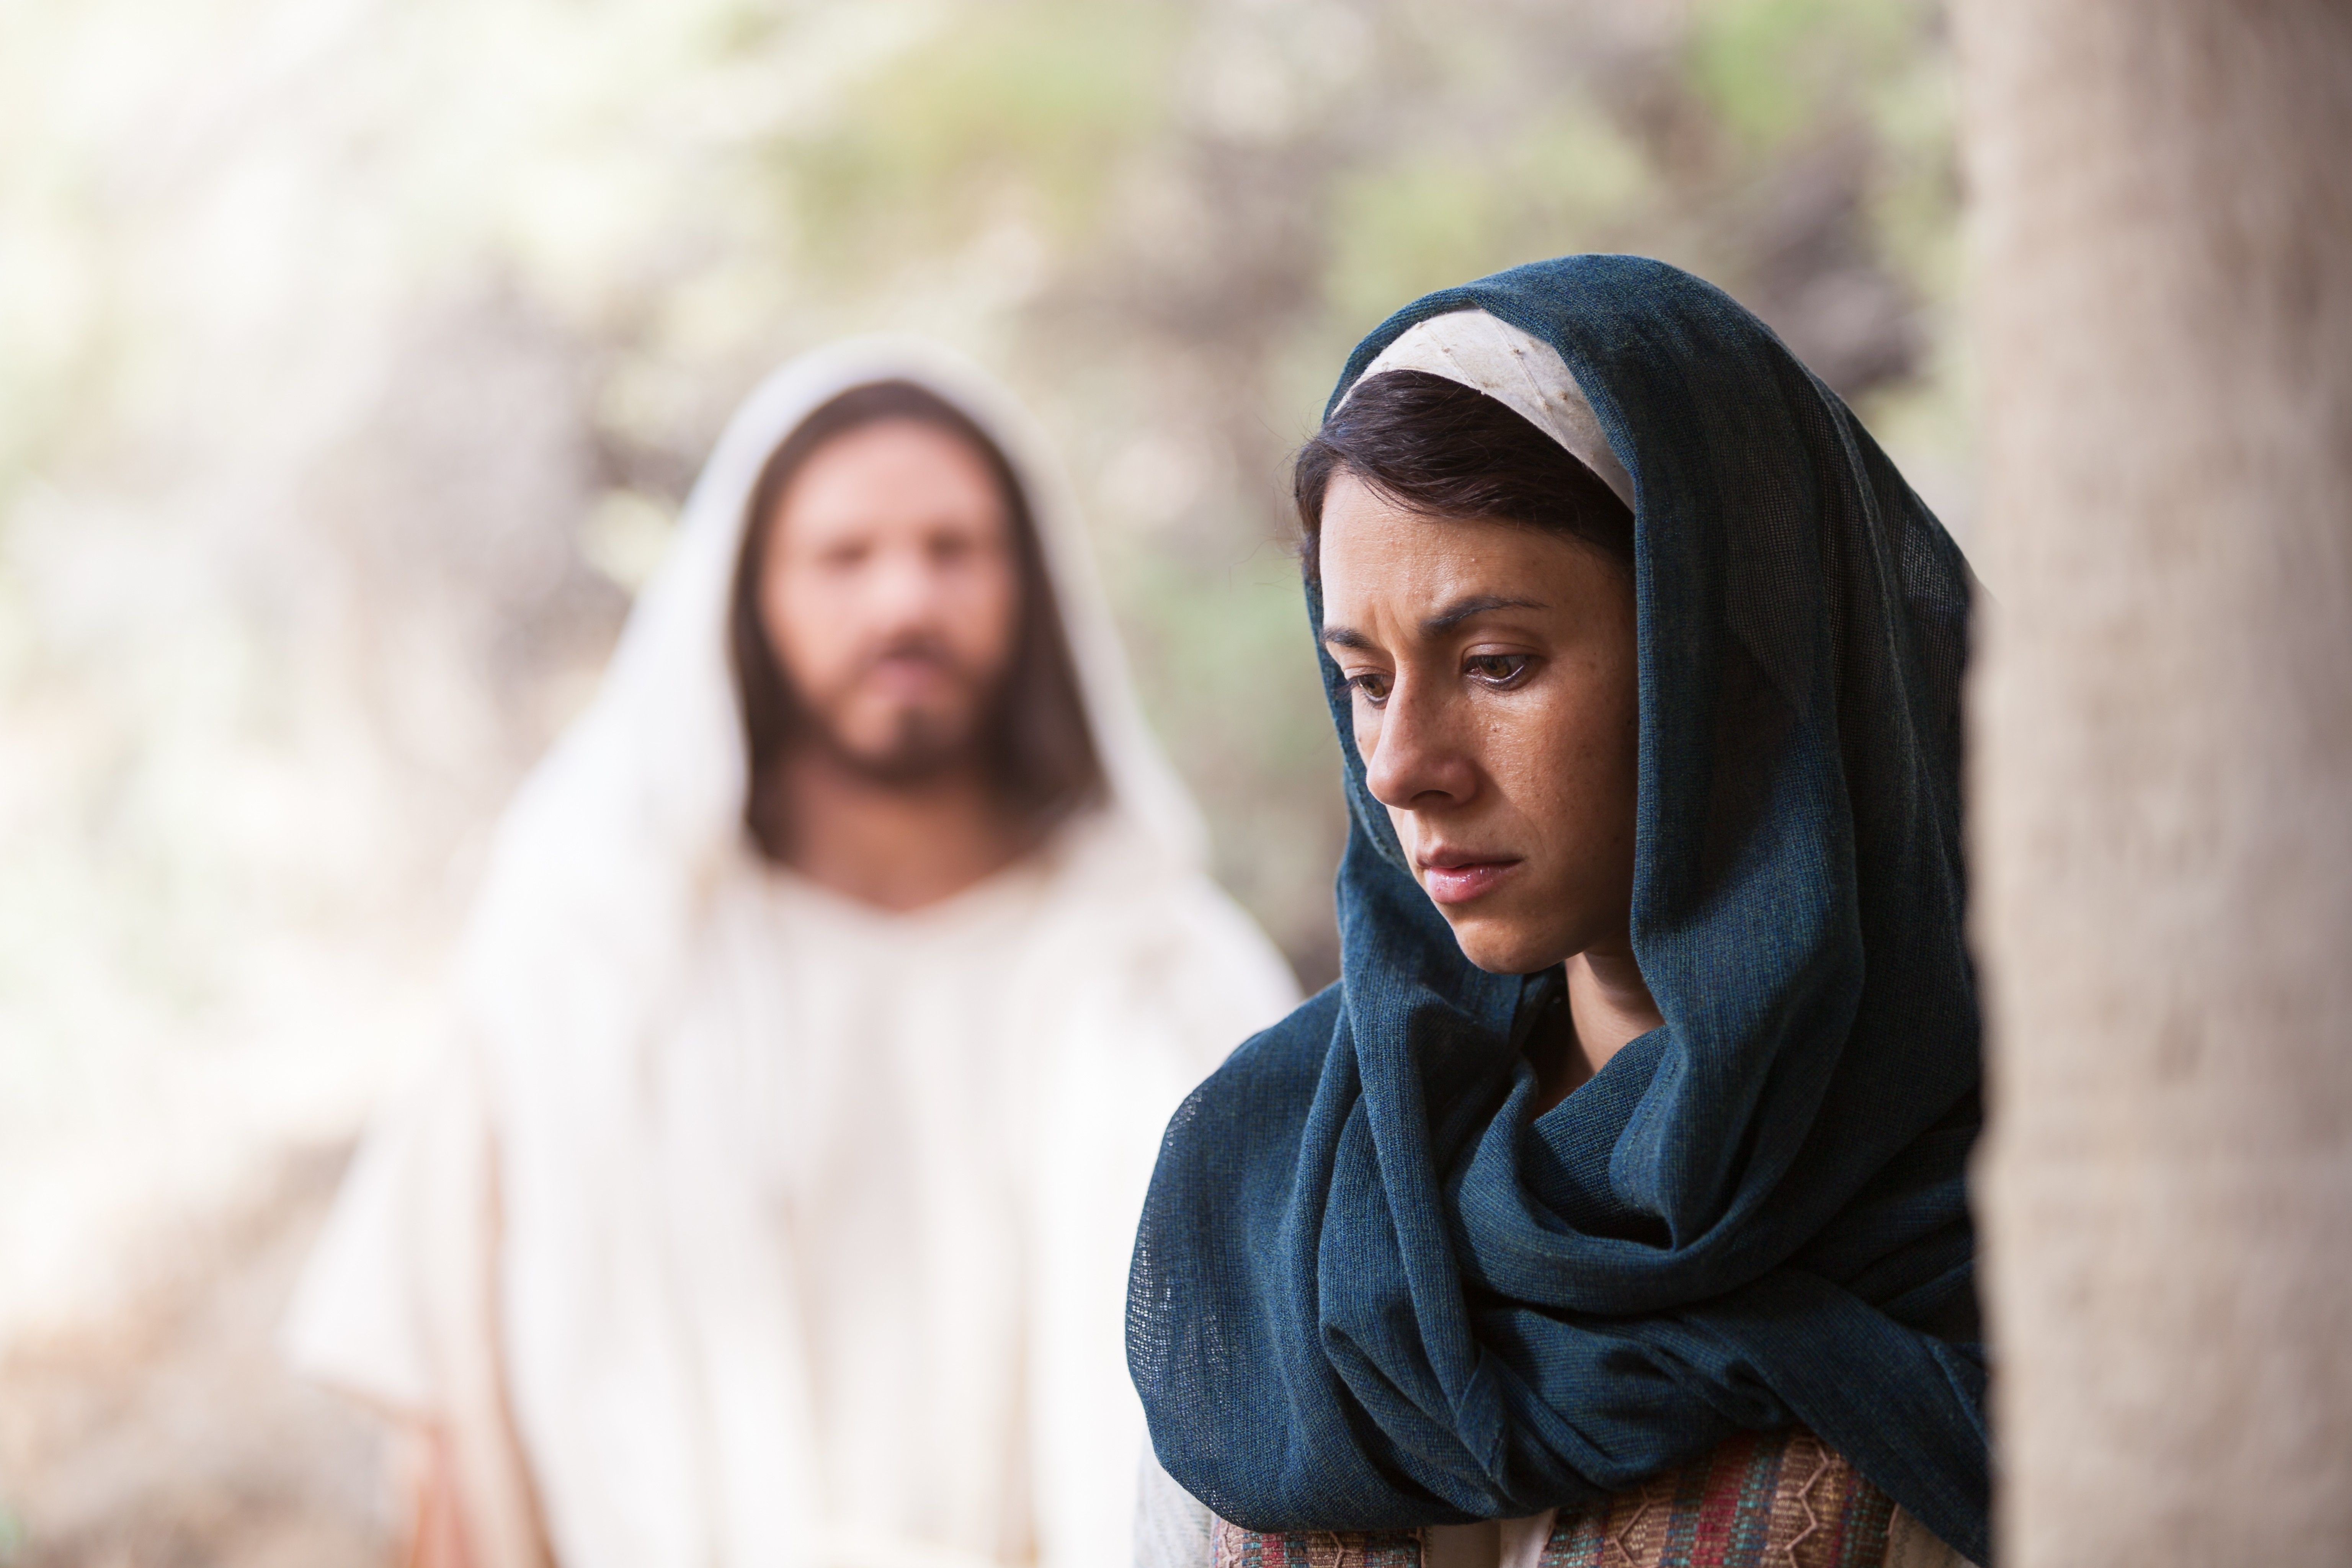 Mary Magdalene hears the voice of Christ while seeking Him at the tomb.